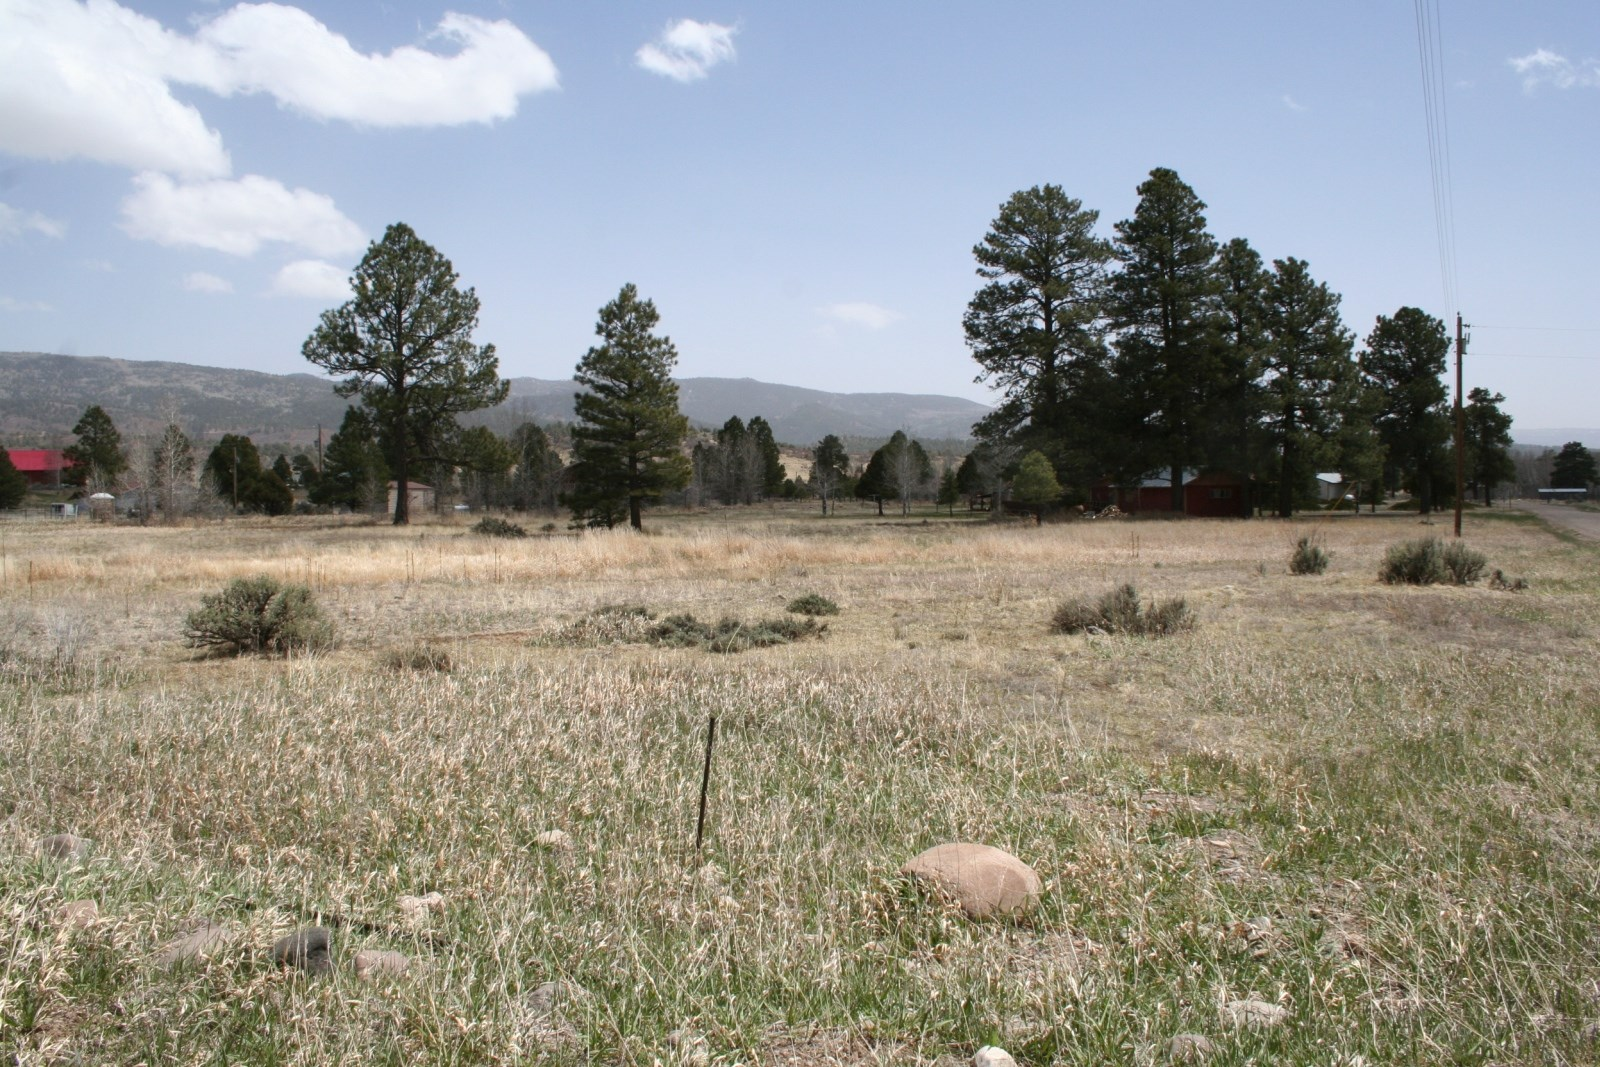 Land for sale min. from Chama River w/ great building site